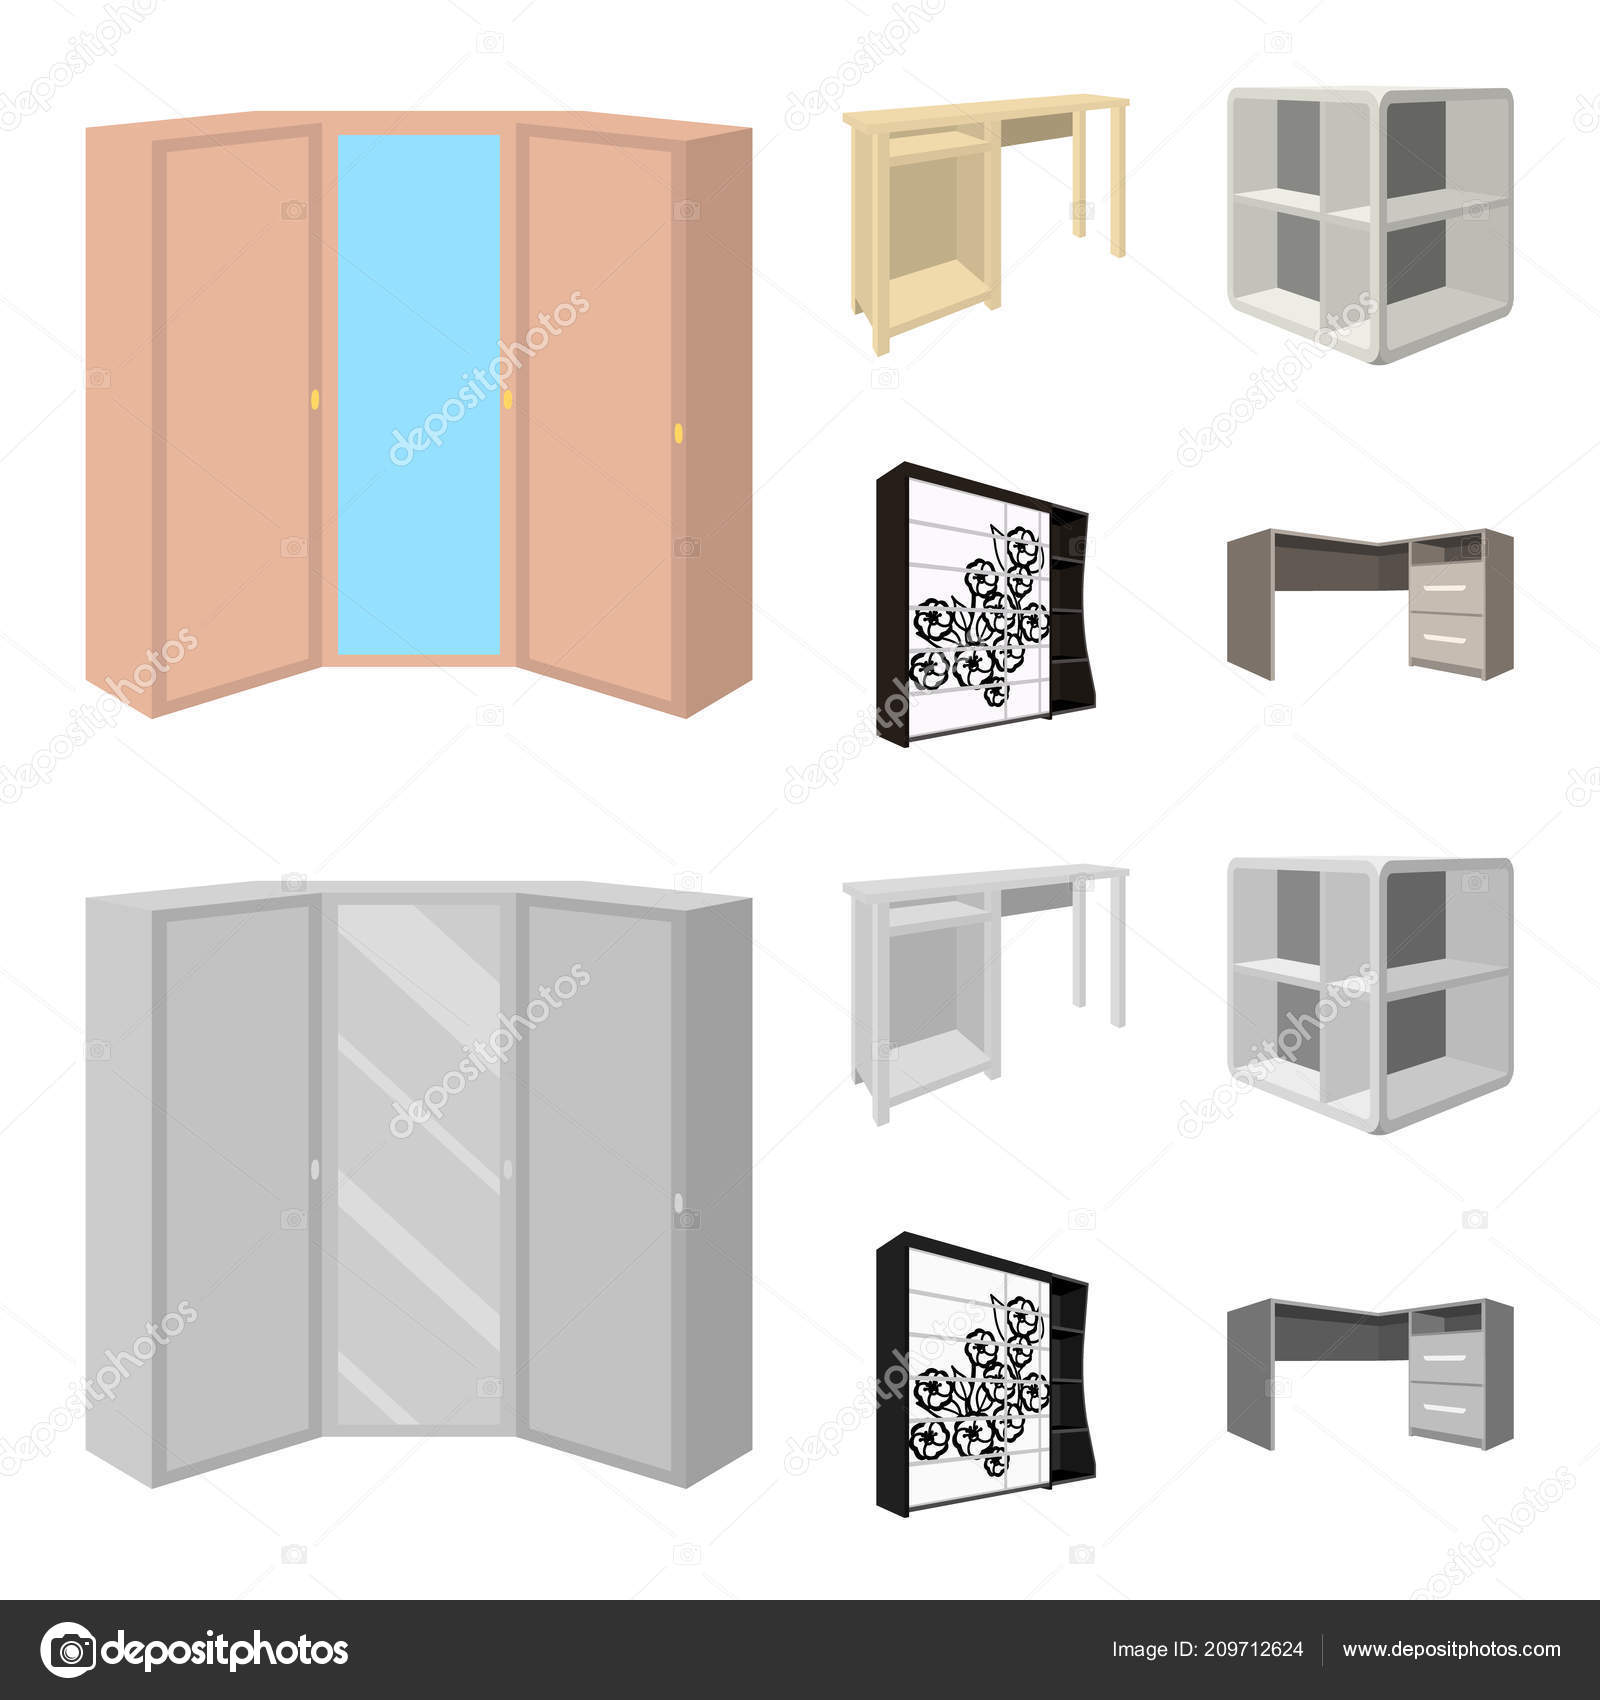 Dressing Table Corner Shelves Computer Desk Wardrobe With Glass Bedroom Furniture Set Collection Icons In Cartoon Monochrome Style Vector Symbol Stock Illustration Web Vector Image By C Pandavector Vector Stock 209712624